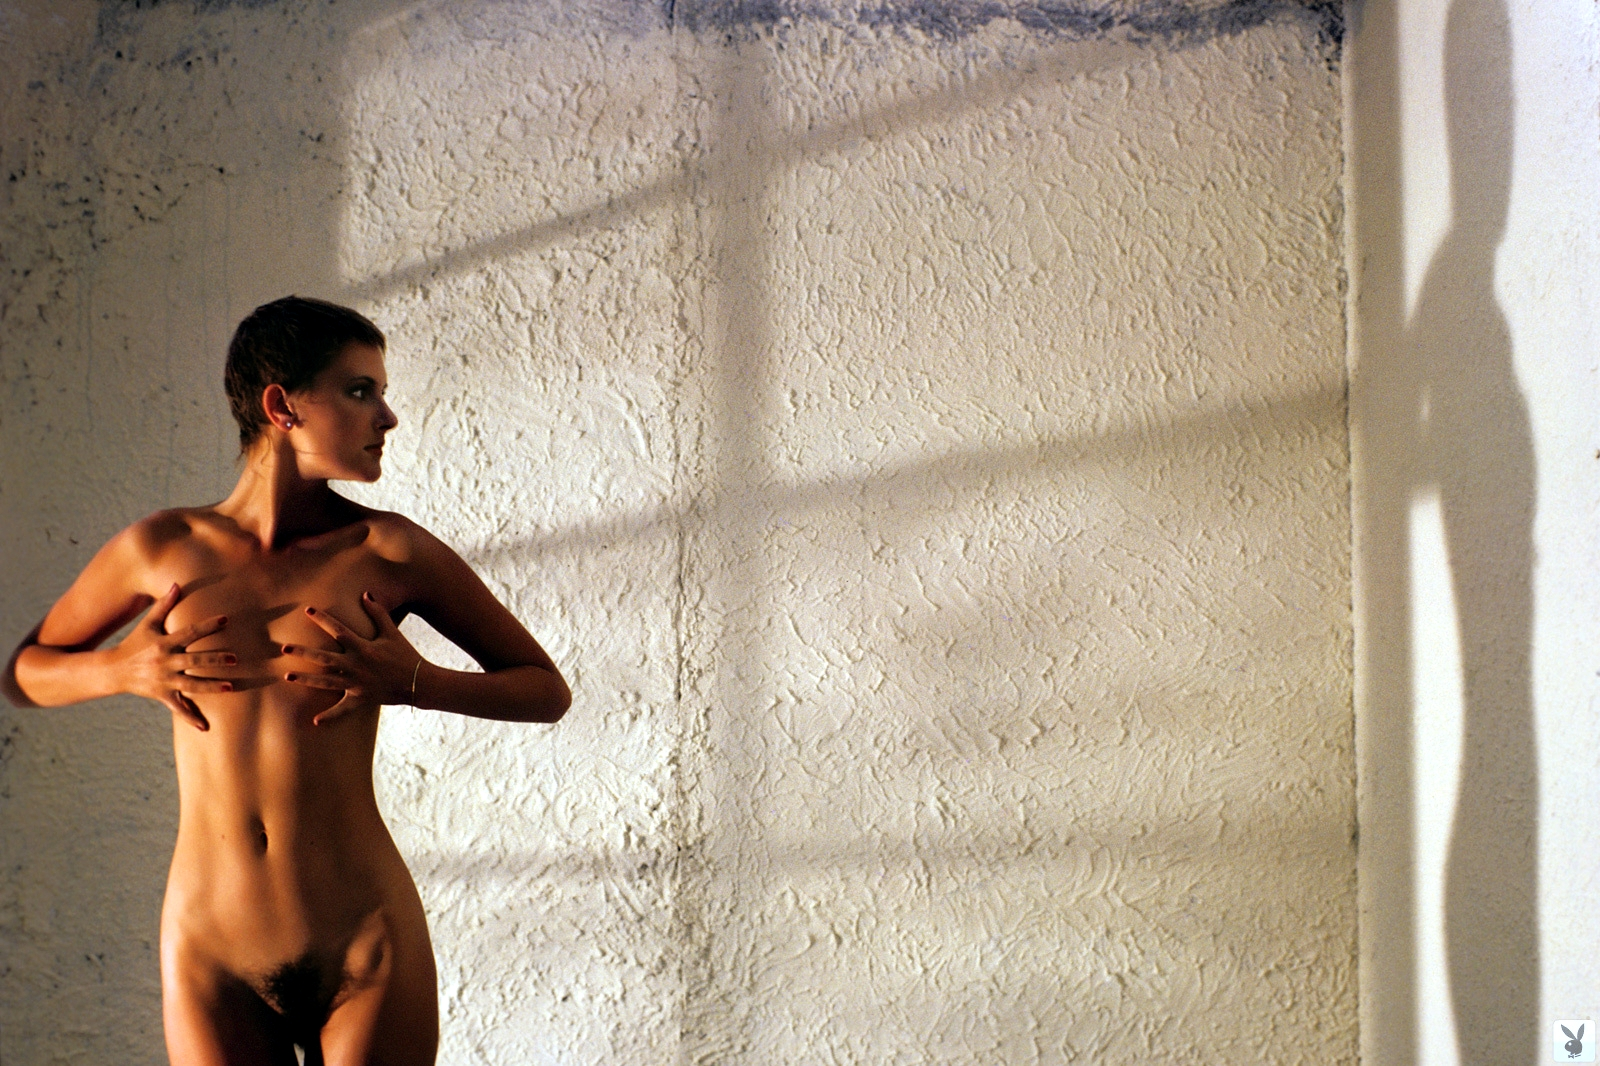 from Omari denise crosby nude in playboy